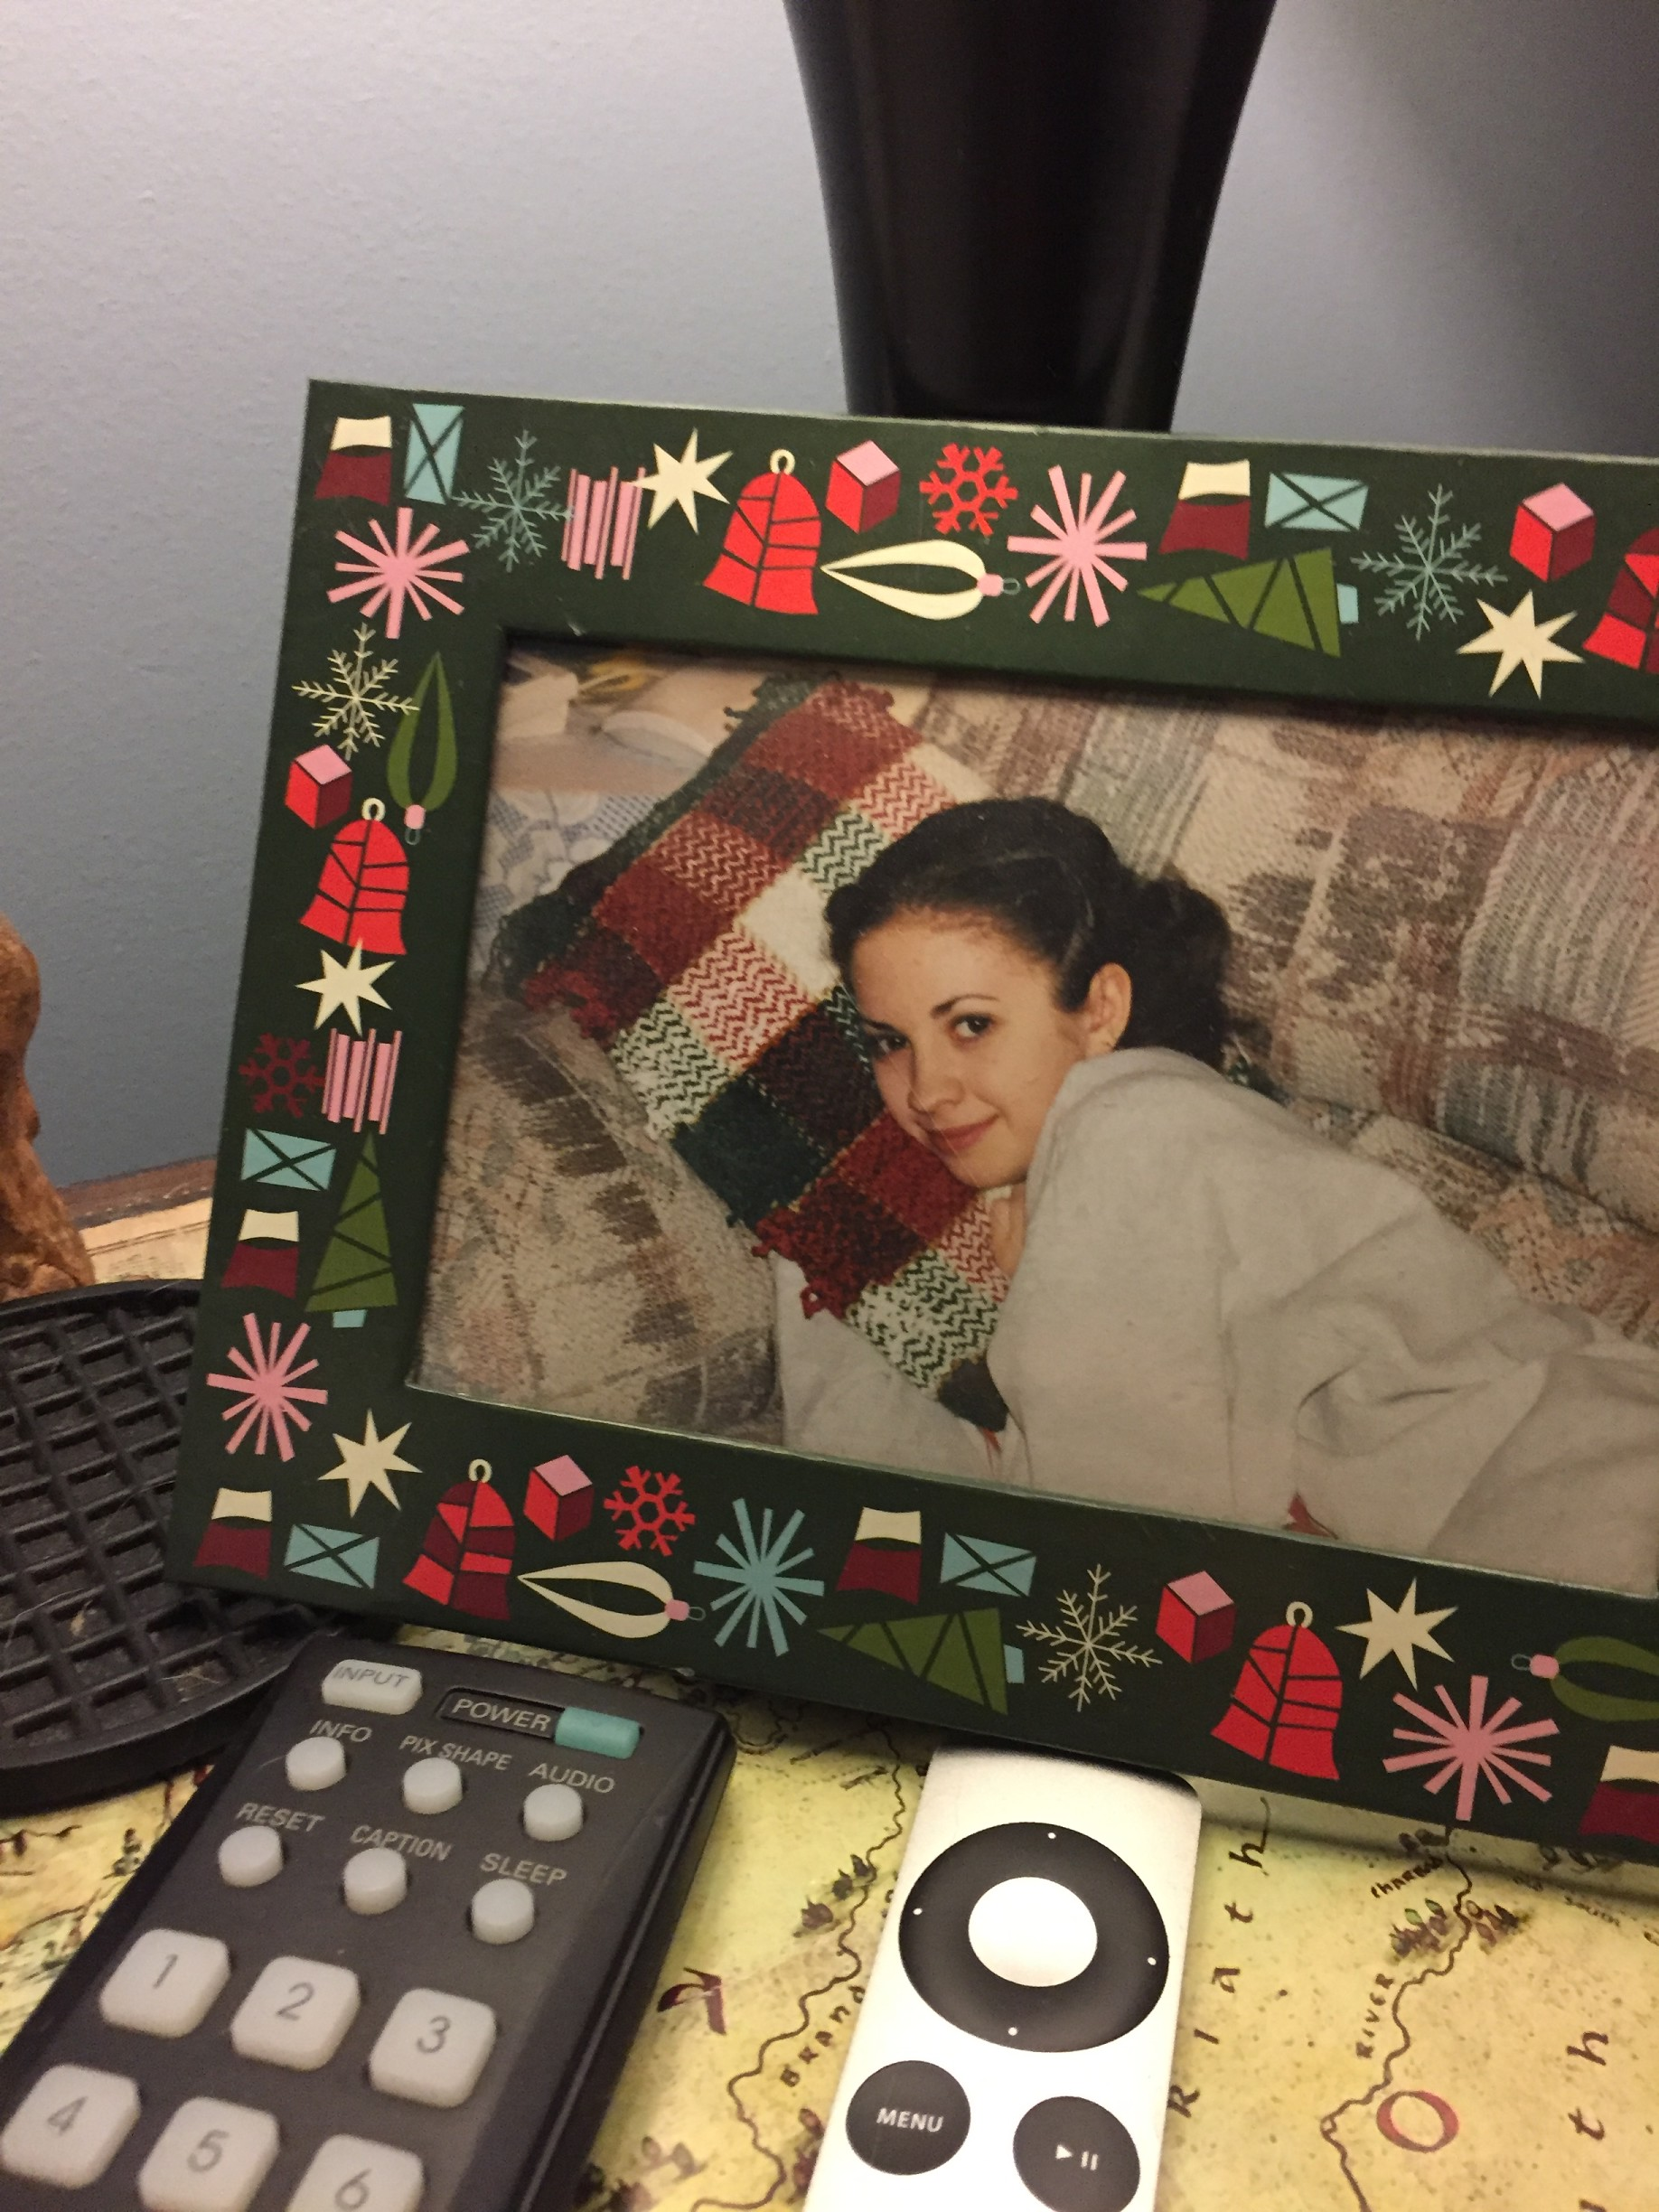 It's endearing that Noah puts this photo of me as a 14-year-old out on his nightstand every year.